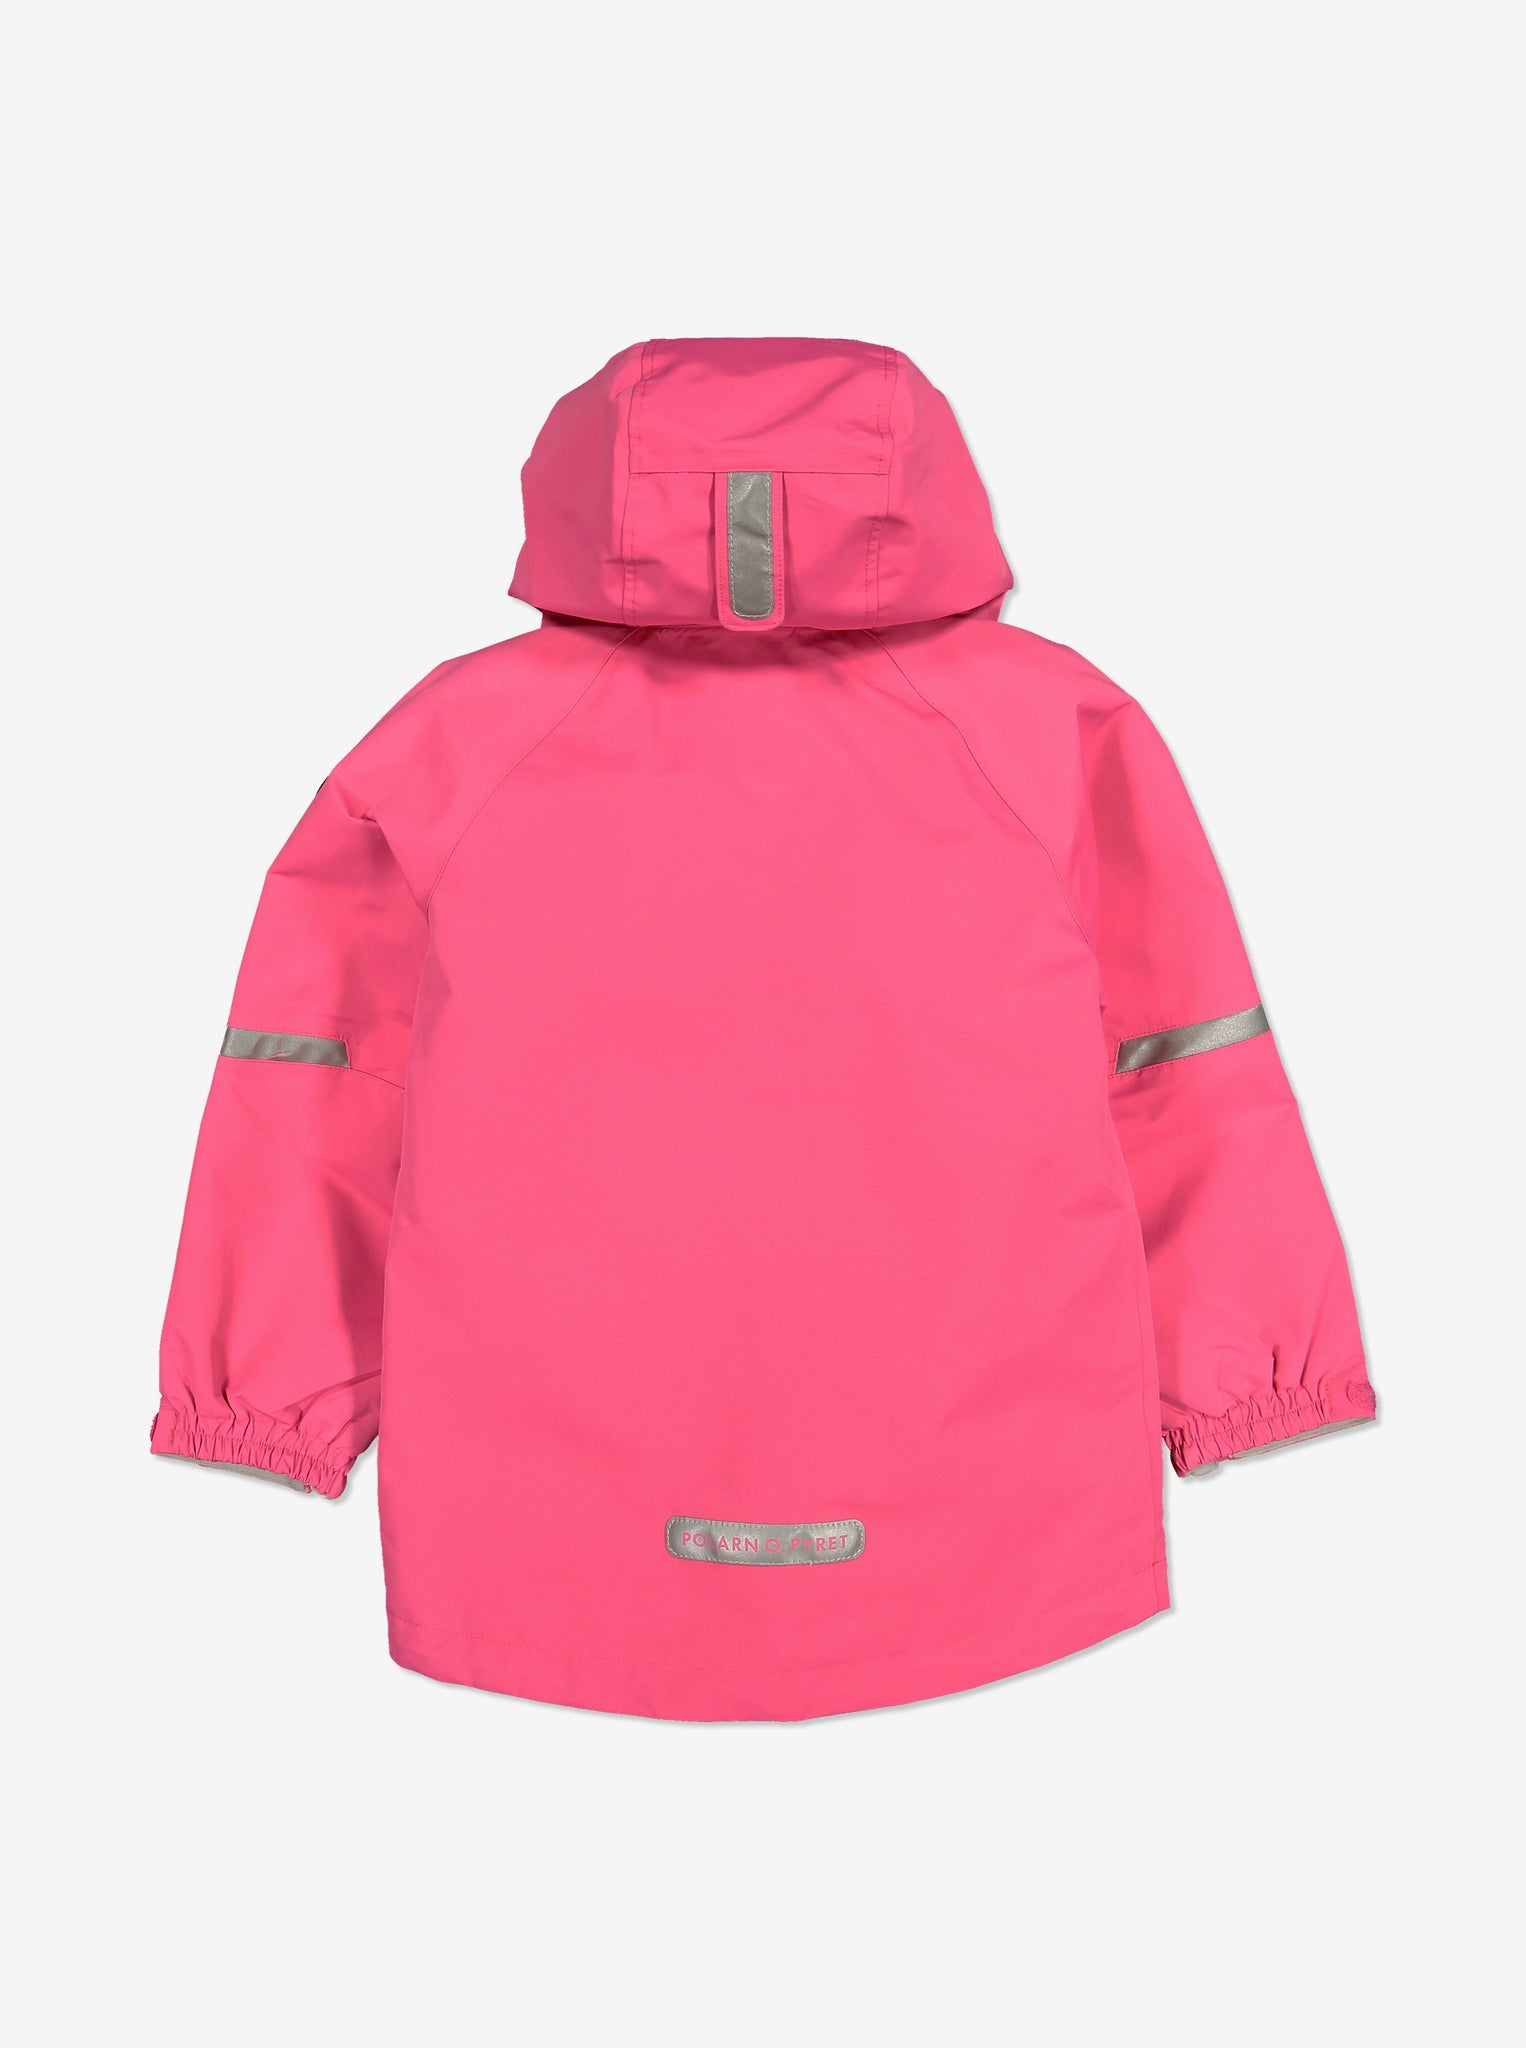 Back view of kids waterproof jacket in pink, comes with reflectors and detachable hood, made of soft shell fabric.